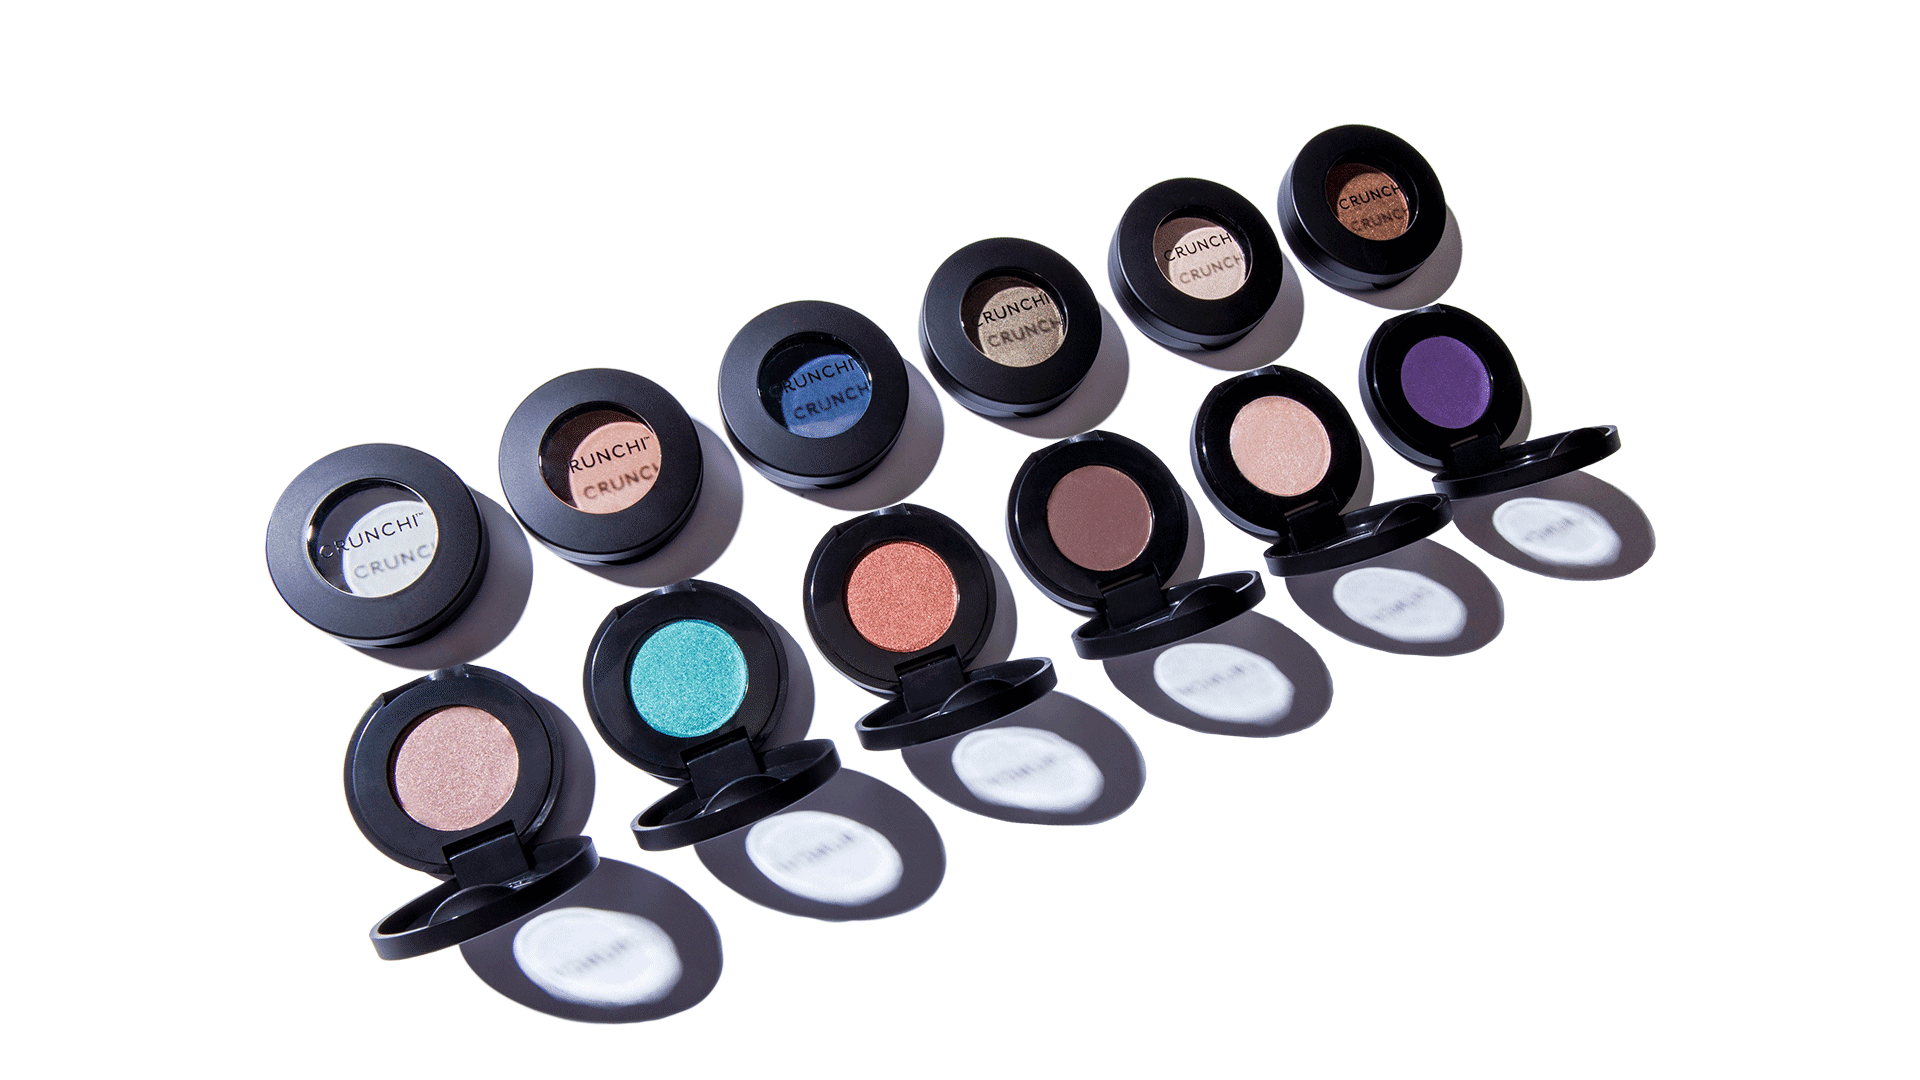 Rows of Crunchi Eyeshadow